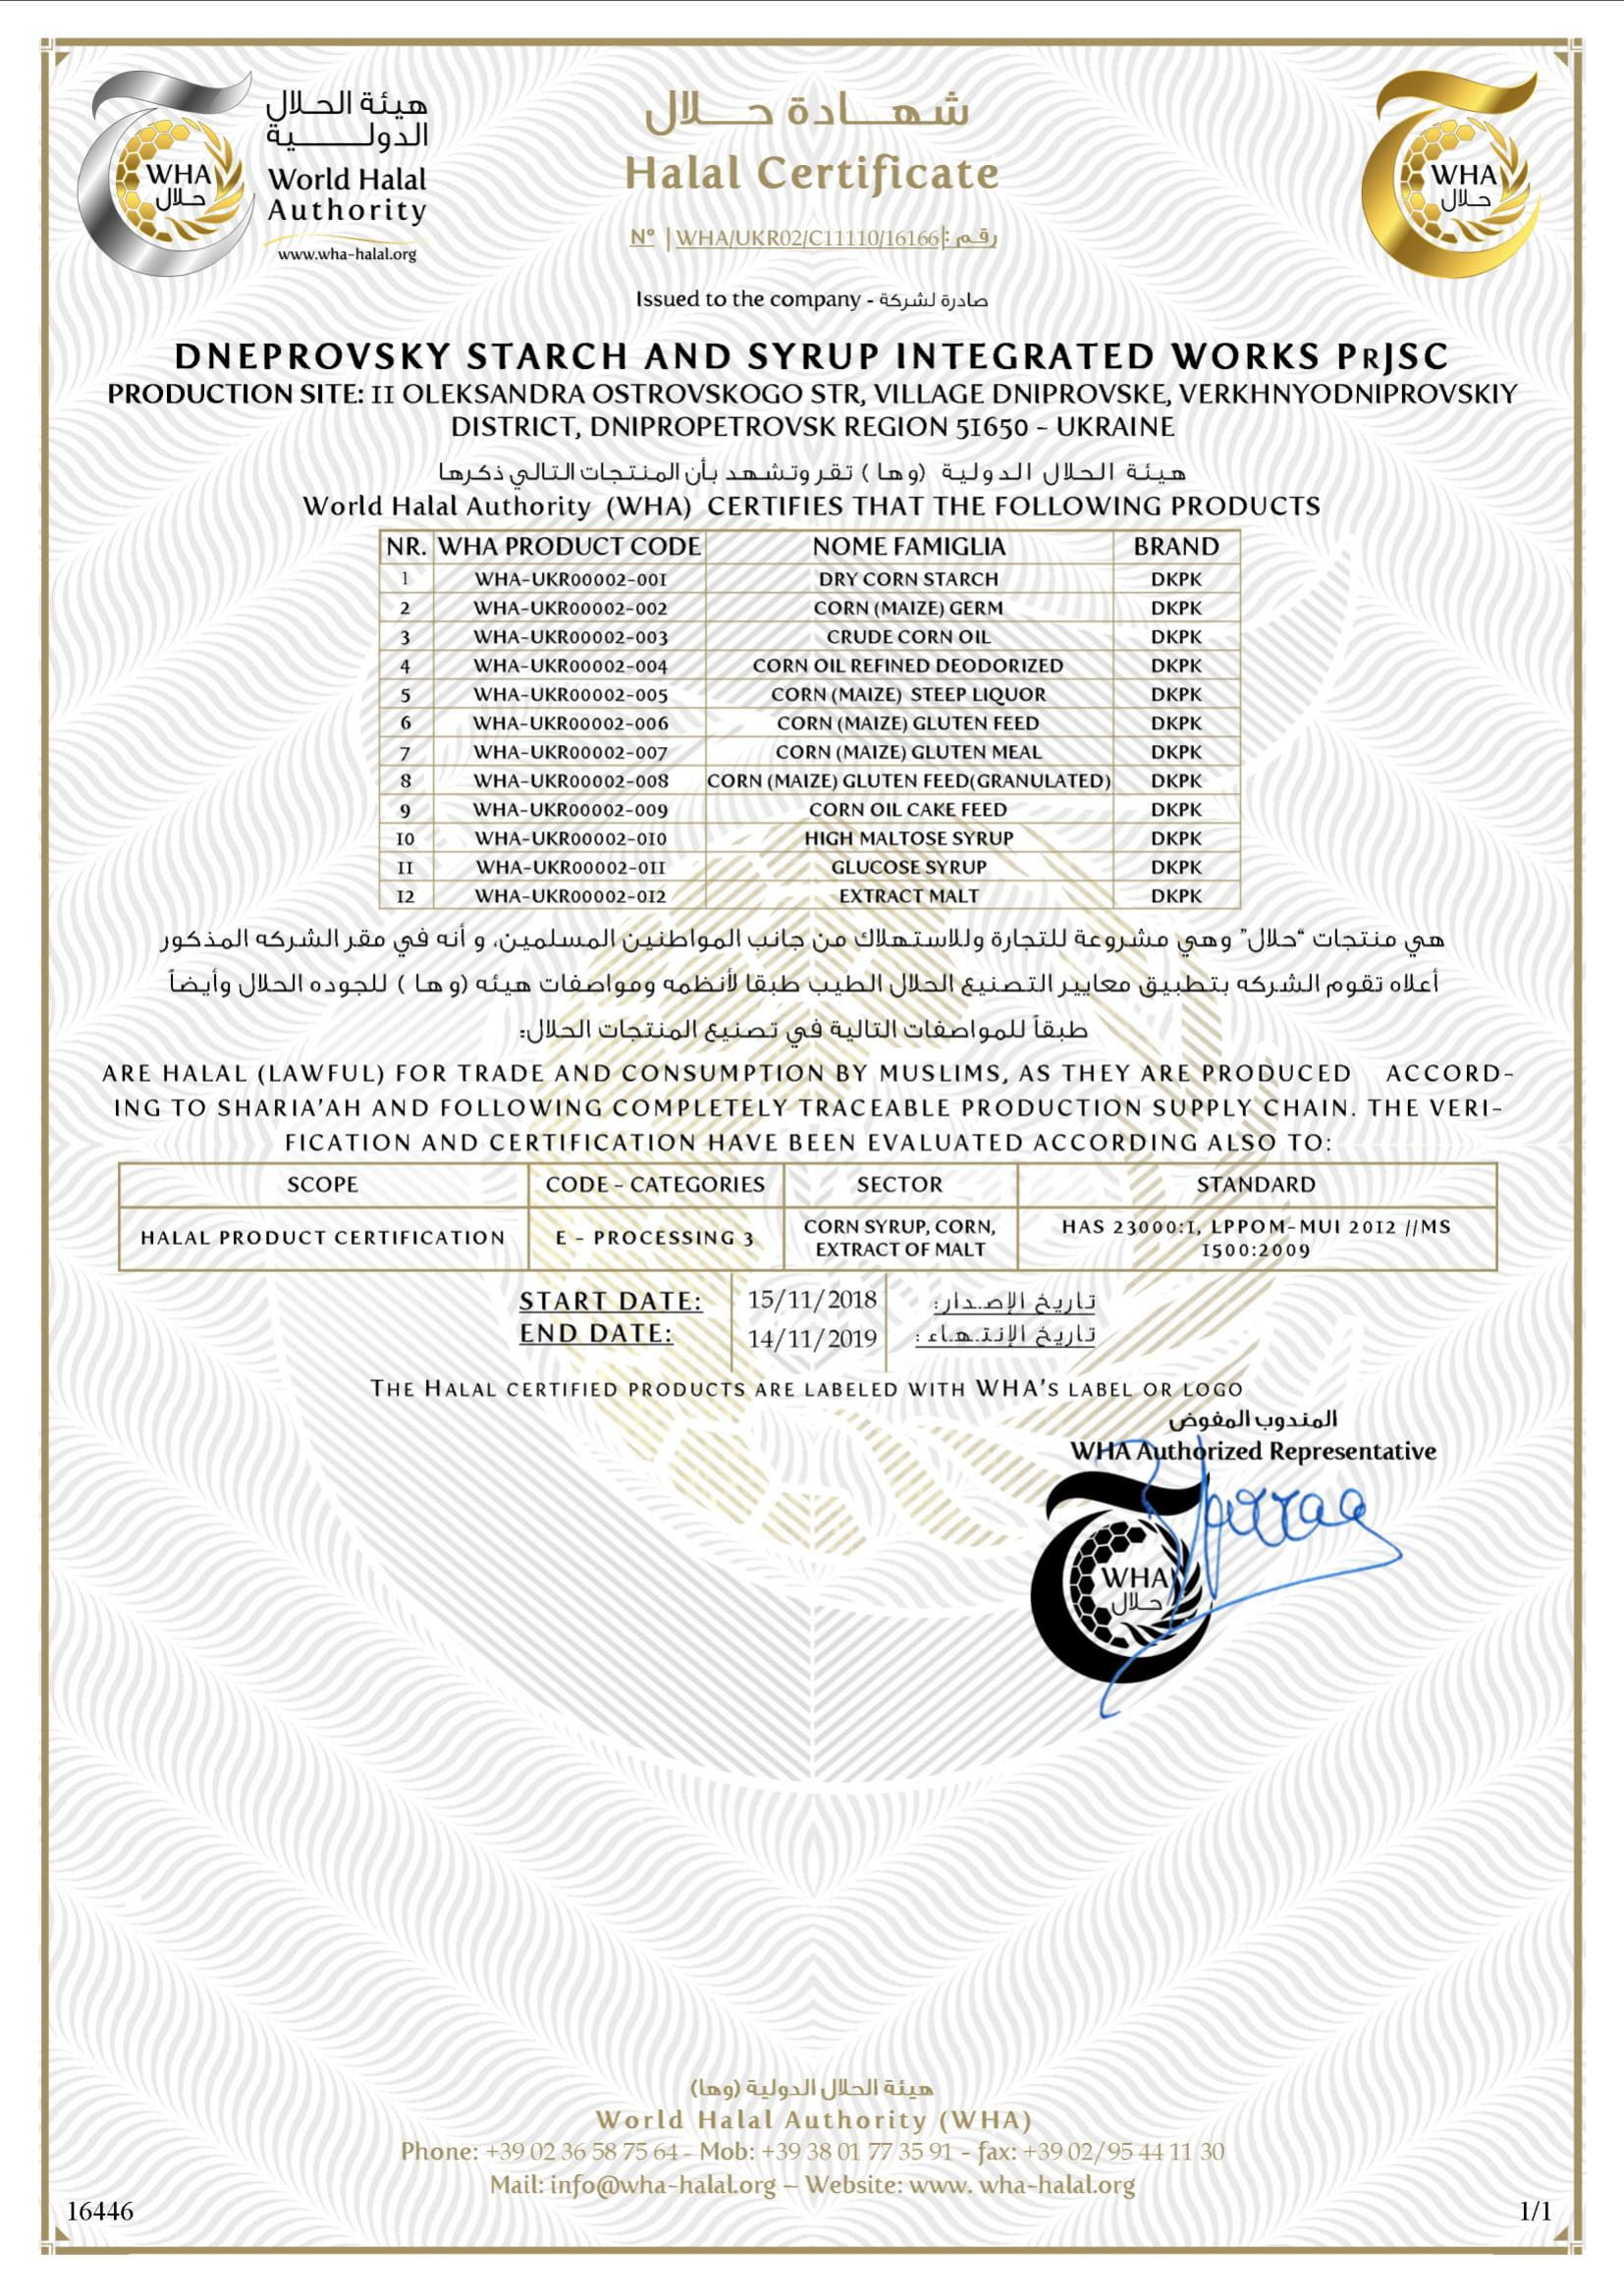 Halal Certificate WHA PrJSC Dneprovsky starch and syrups integrated works